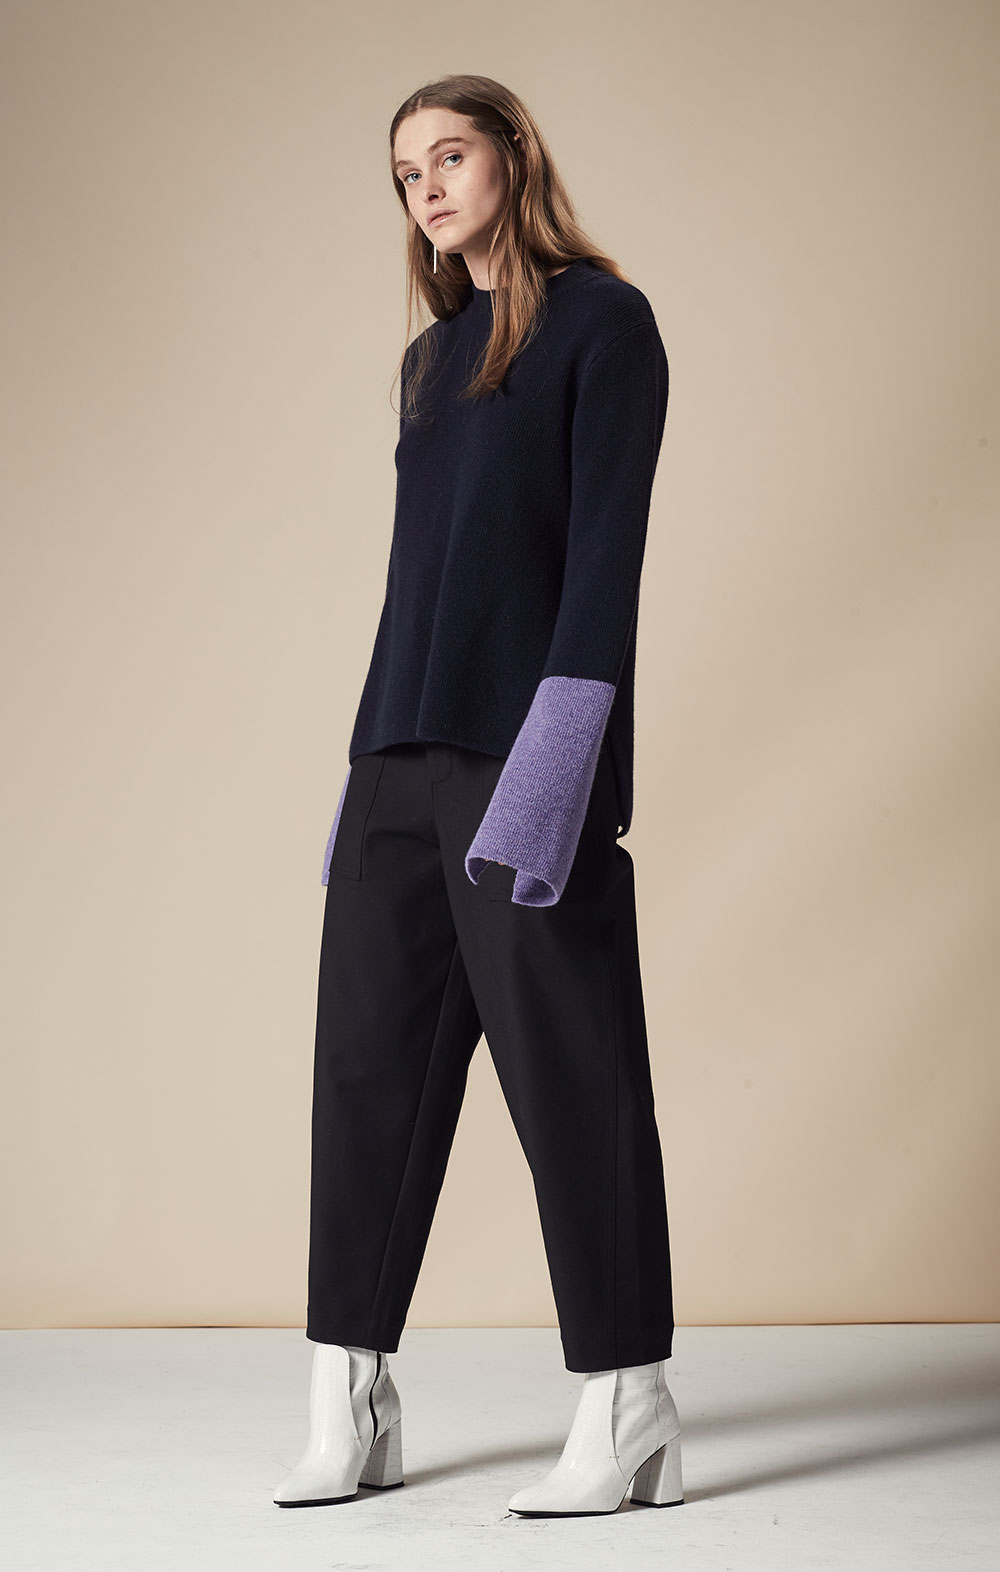 Cashmere-blend Color Block Pullover FBK094-NVY/PUR Pocket Detail Cropped Pants FBP030-BLK